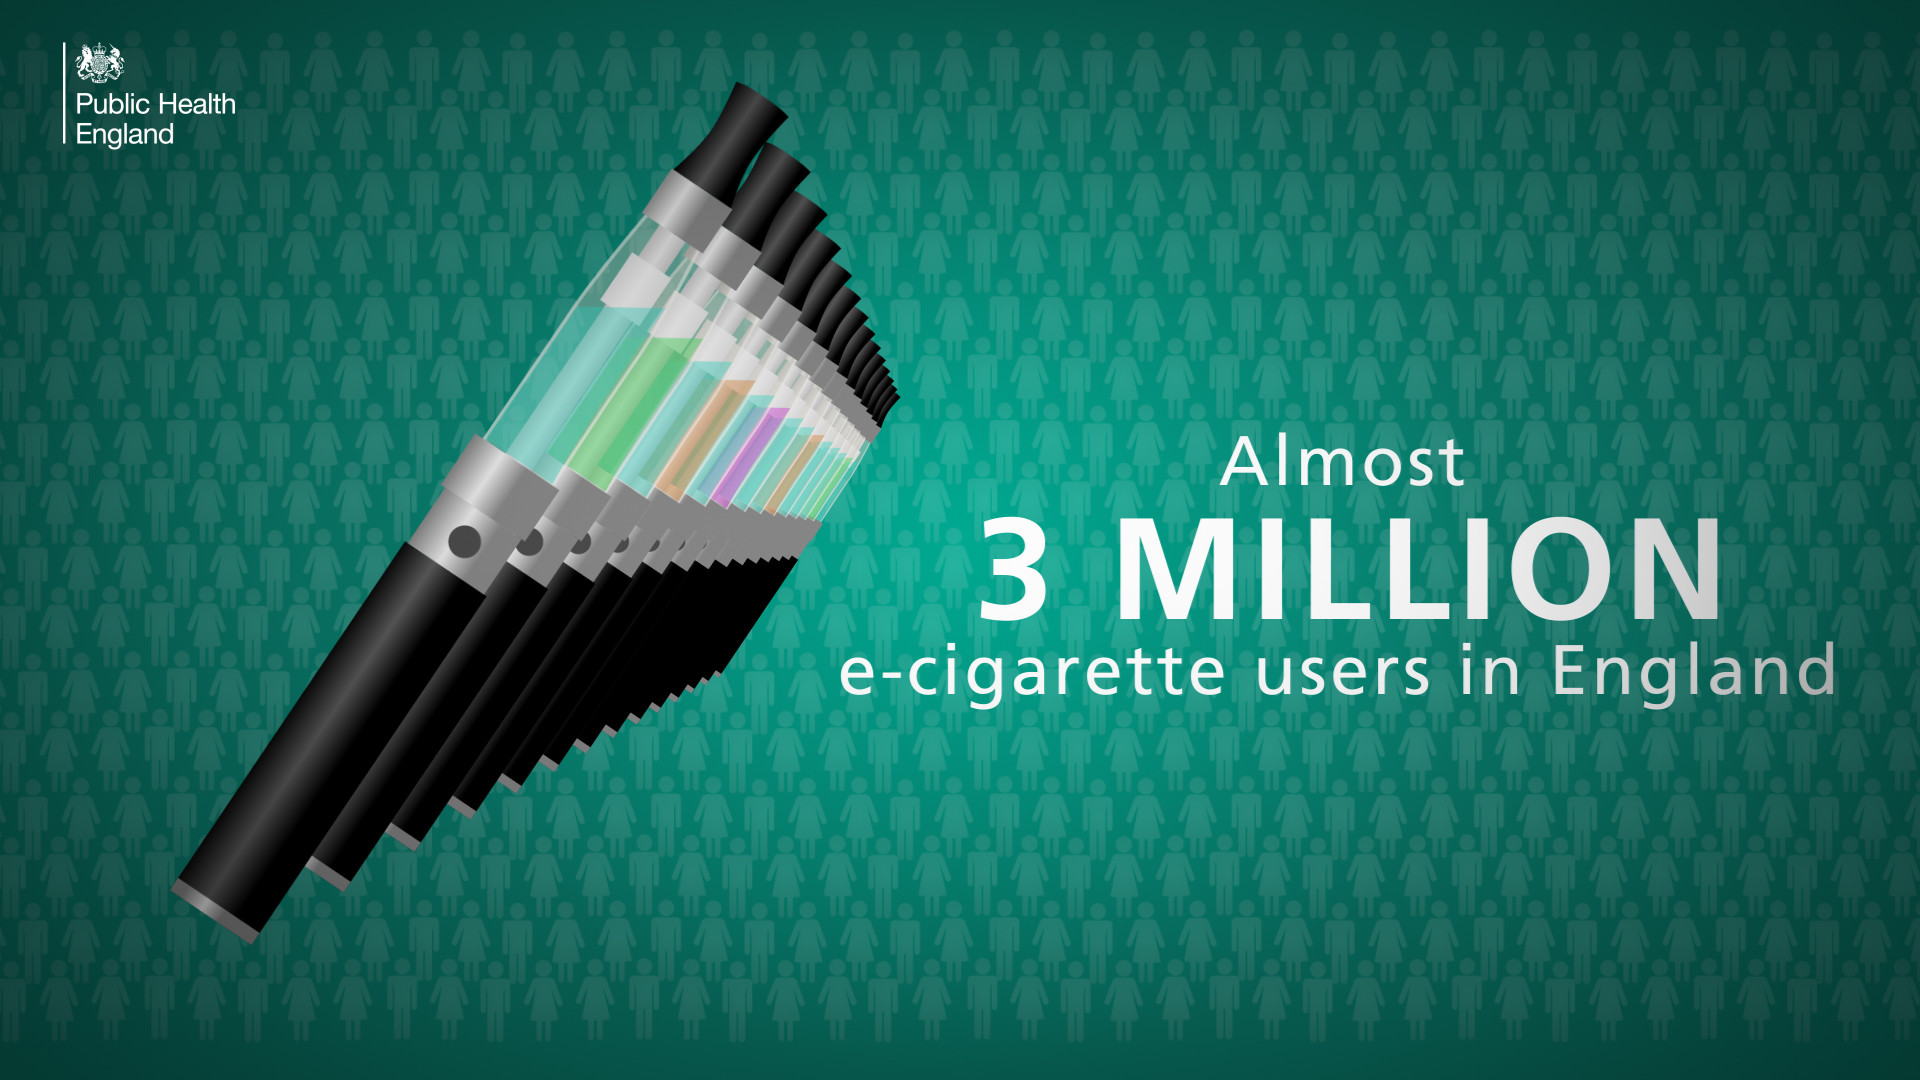 1920x1080 Myth 7 - E-cigarettes don't help you quit smoking